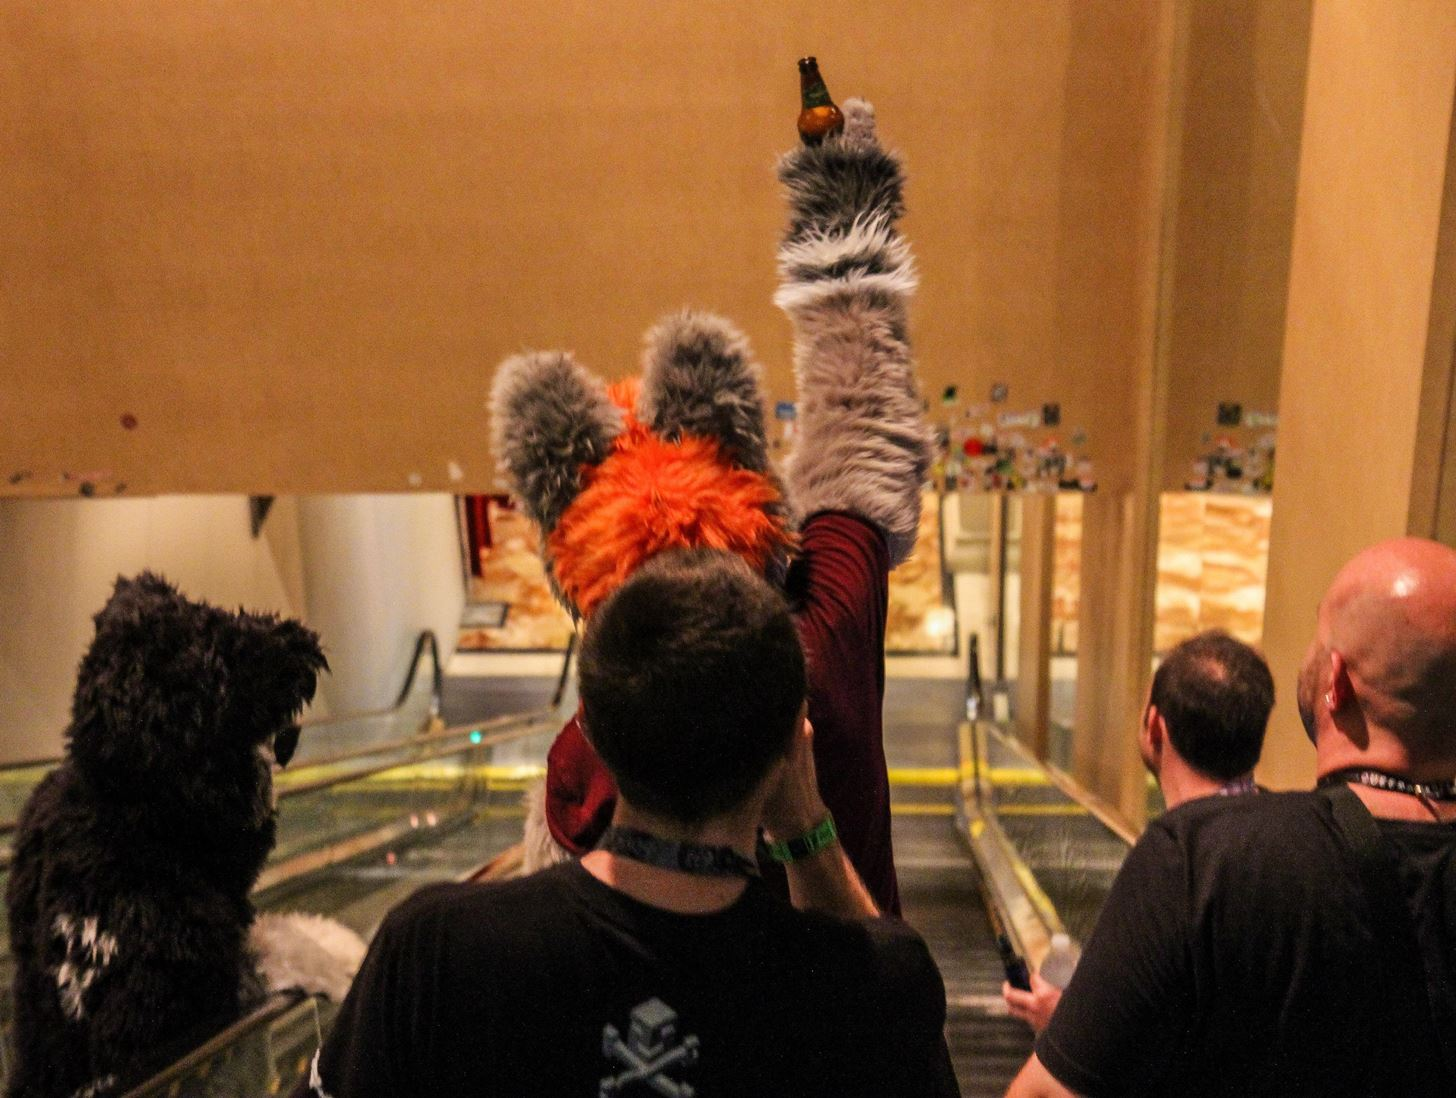 How to Attend Defcon Without Looking Like a Noob or Spending a